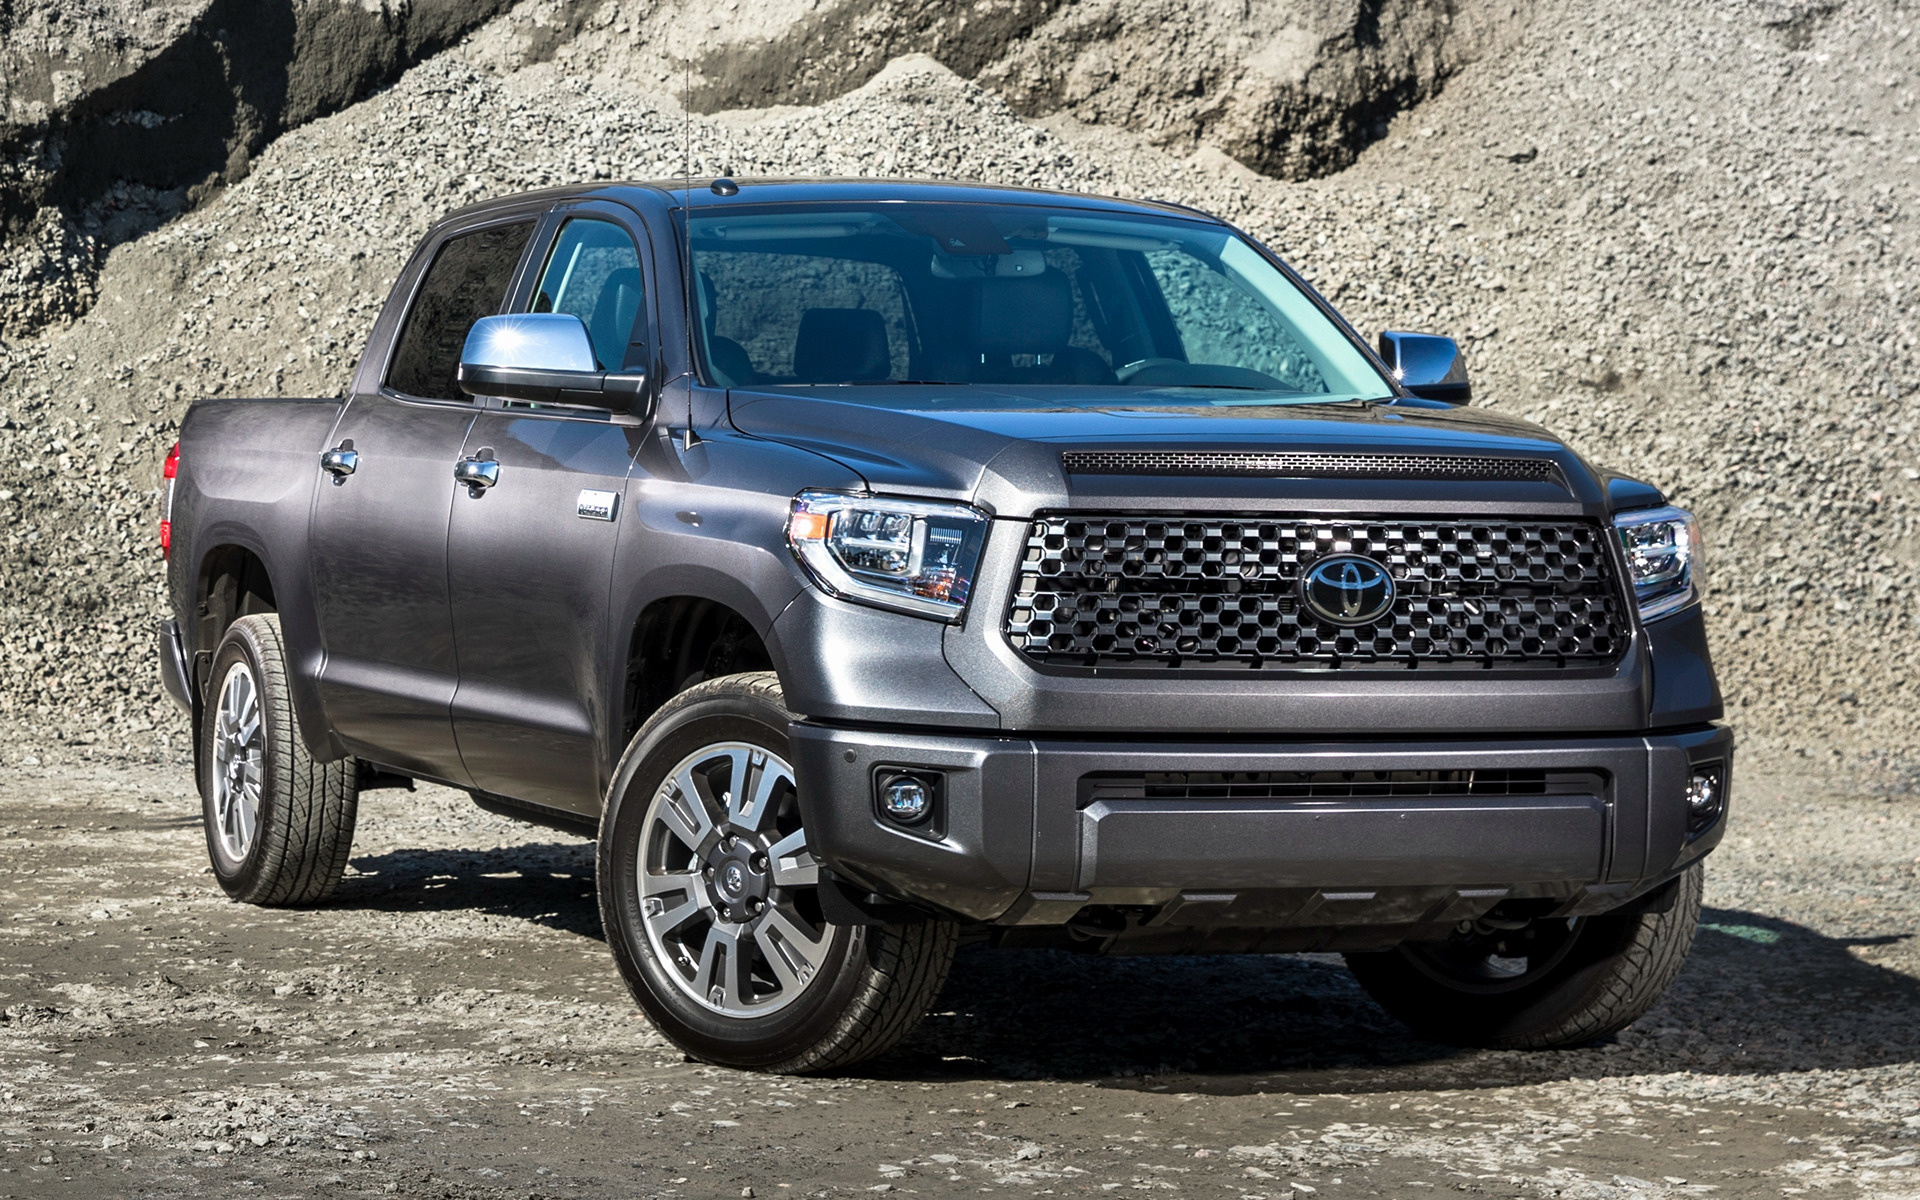 Toyota Tundra Trd Pro >> 2018 Toyota Tundra Platinum CrewMax - Wallpapers and HD ...